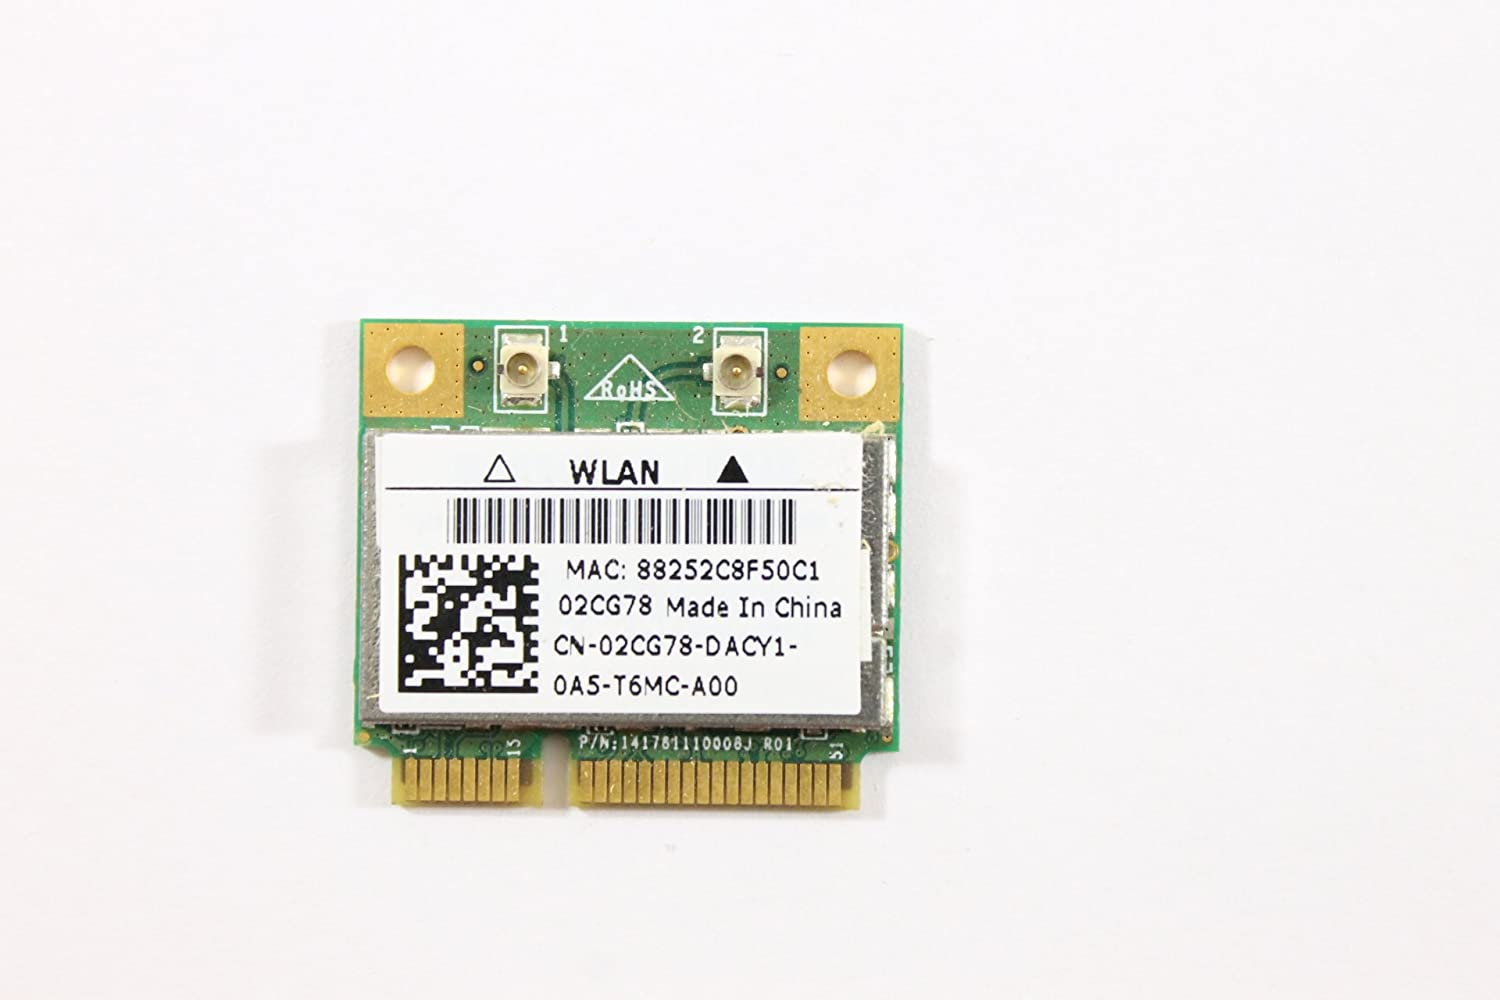 Dell Mini PCI Express Half Height 2CG78 WLAN WiFi 802.11n Wireless Card Inspiron 1121